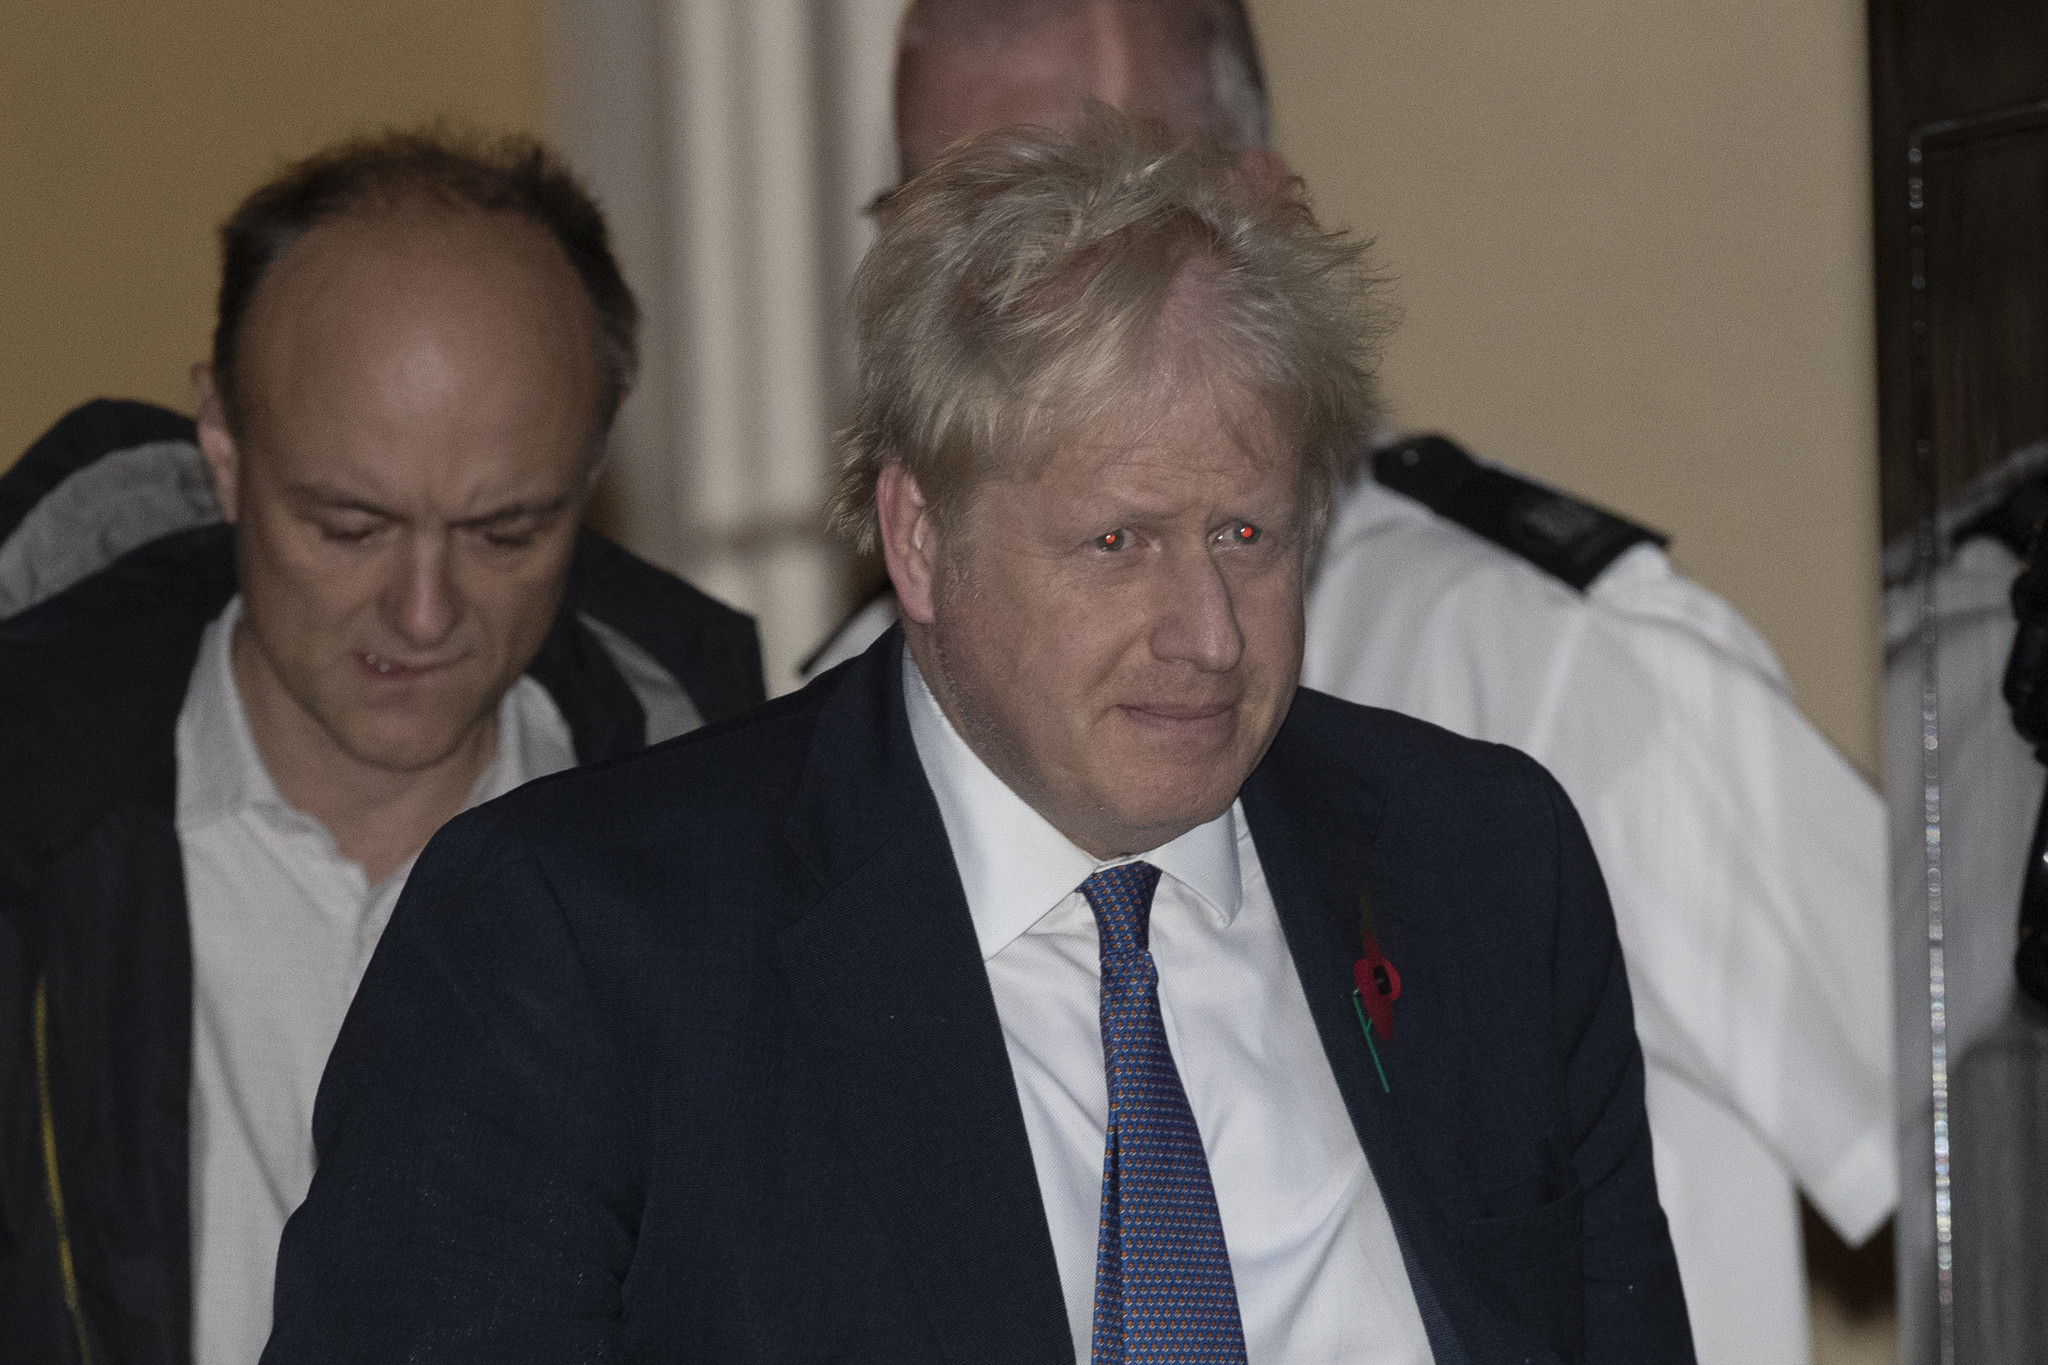 Boris Johnson's senior adviser Dominic Cummings self-quarantining with coronavirus symptoms